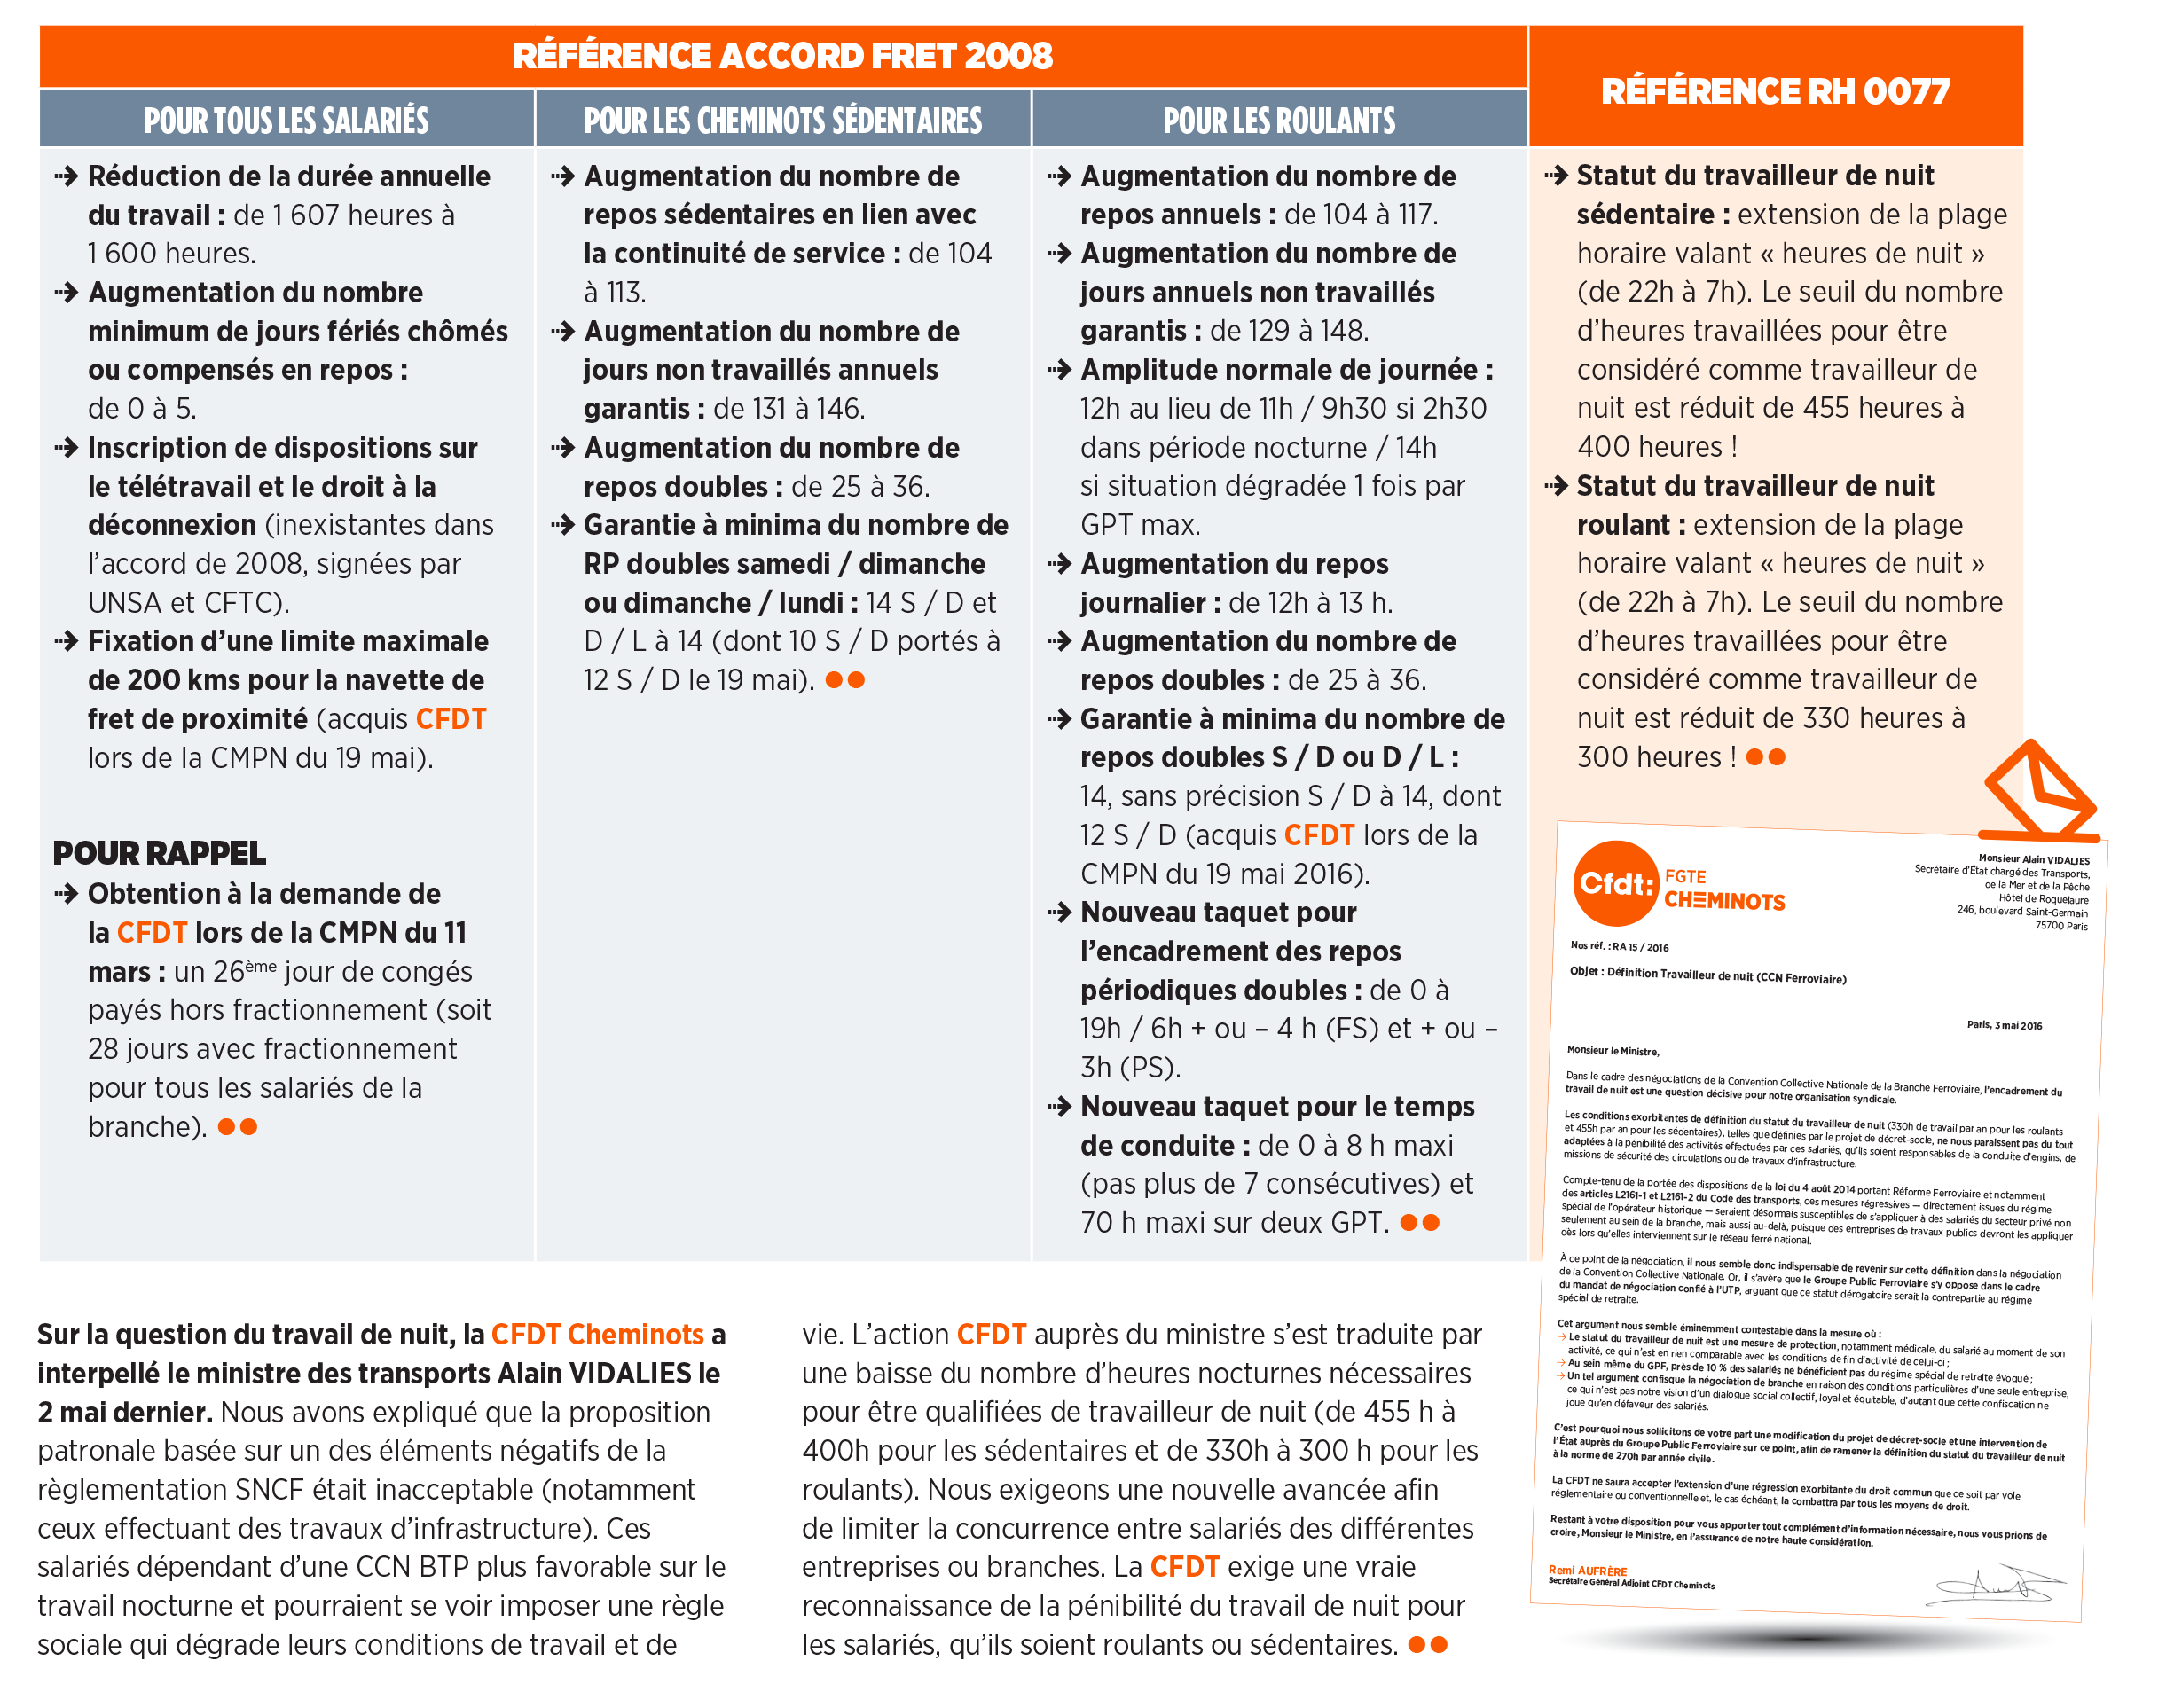 Convention Collective Ferroviaire Accord D Entreprise Sncf Cfdt